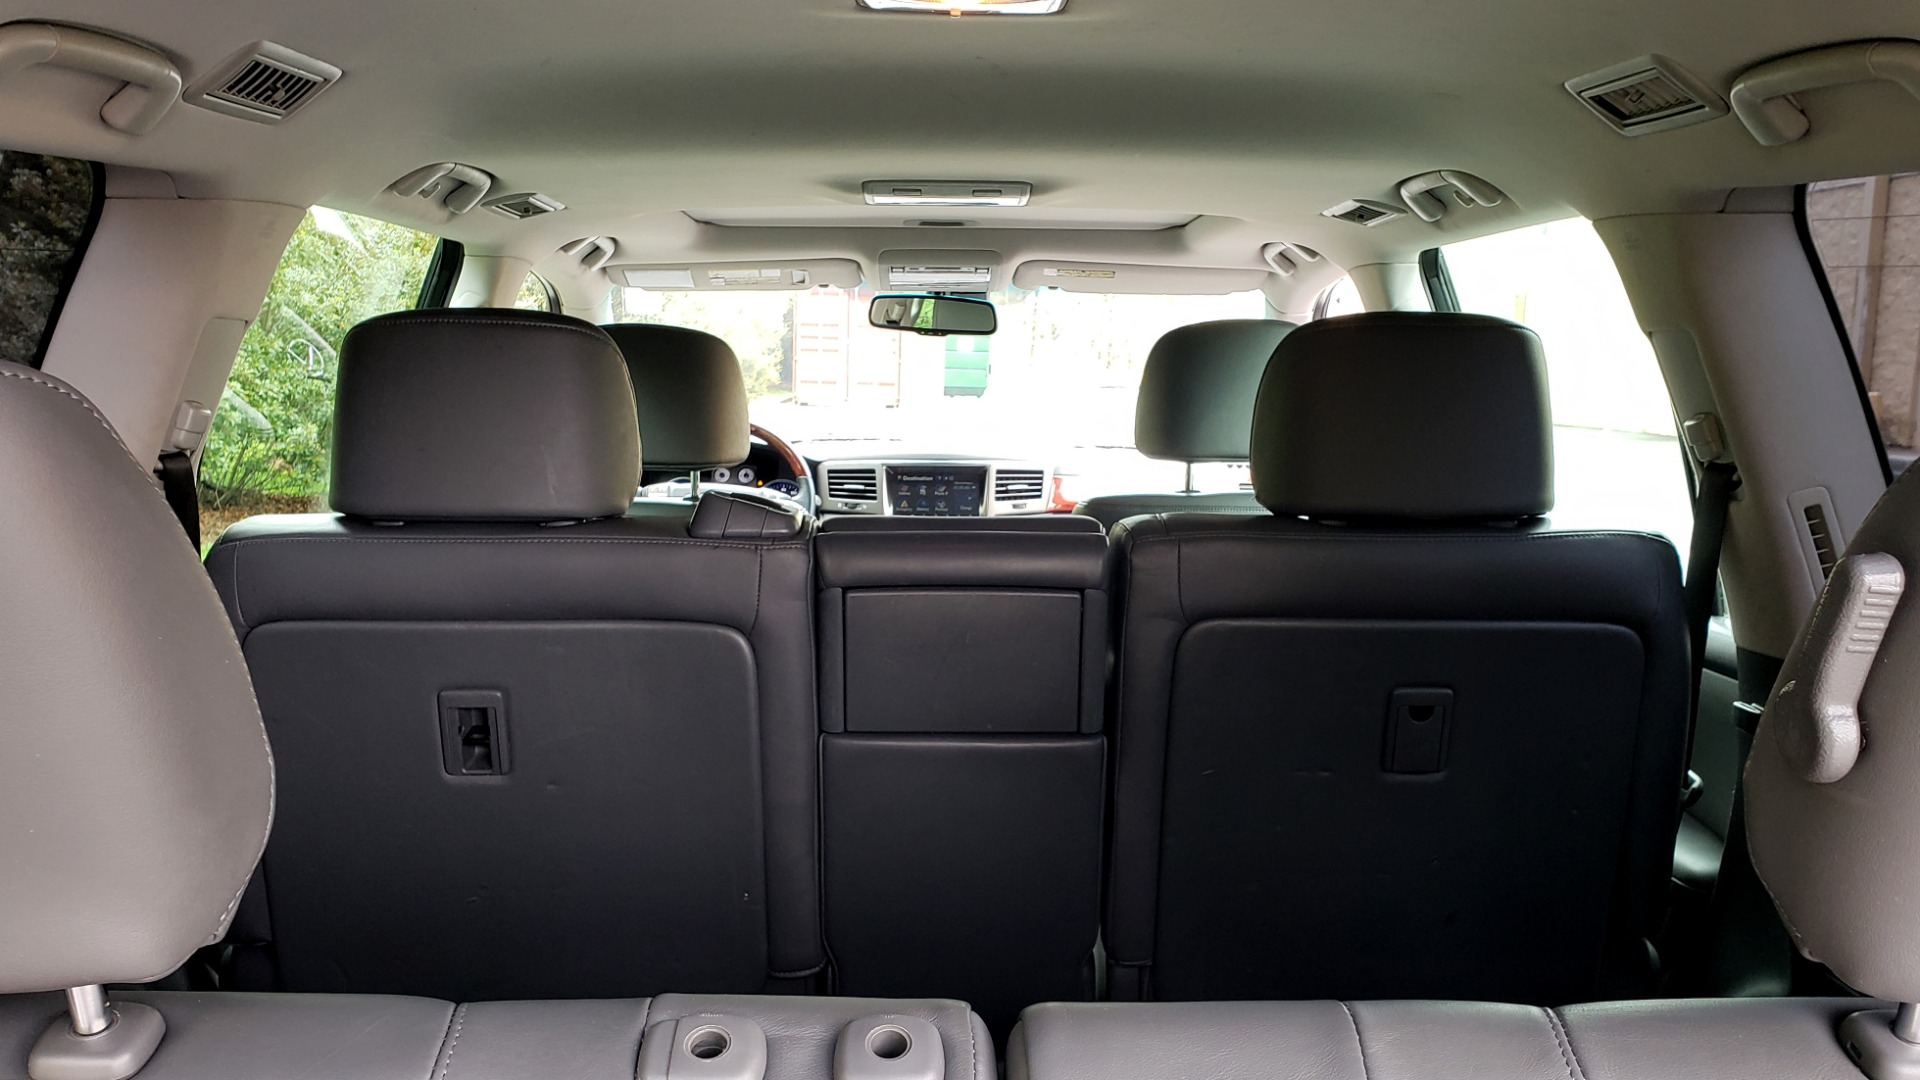 Used 2008 Lexus LX 570 4WD / TECH PKG / NAV / SUNROOF / MARK LEVINSON / PARK ASST for sale $22,995 at Formula Imports in Charlotte NC 28227 15